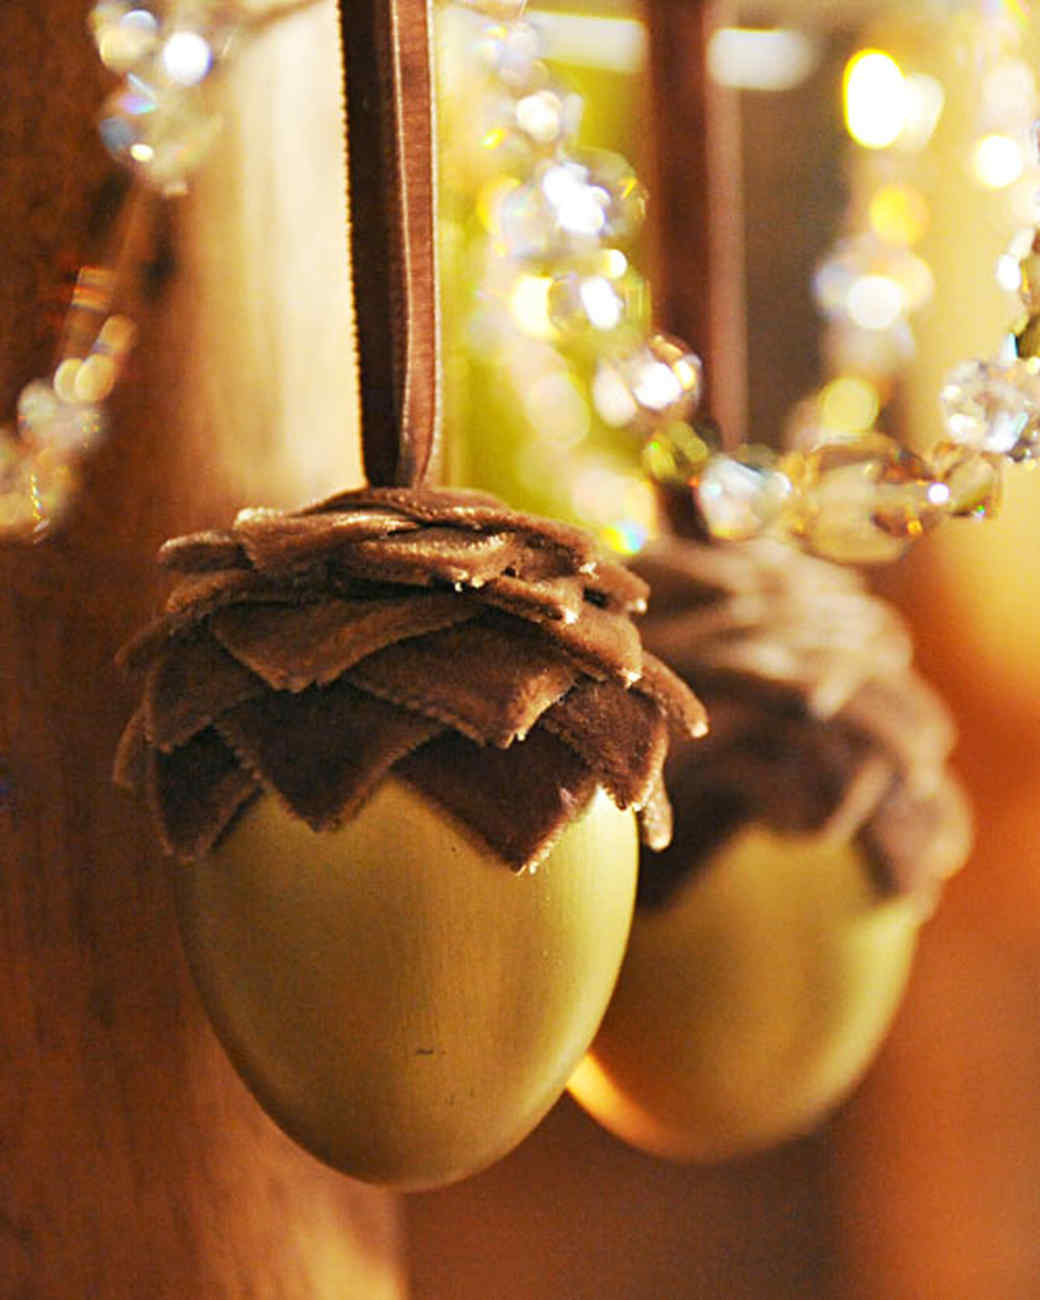 Egg-Corn Decorations